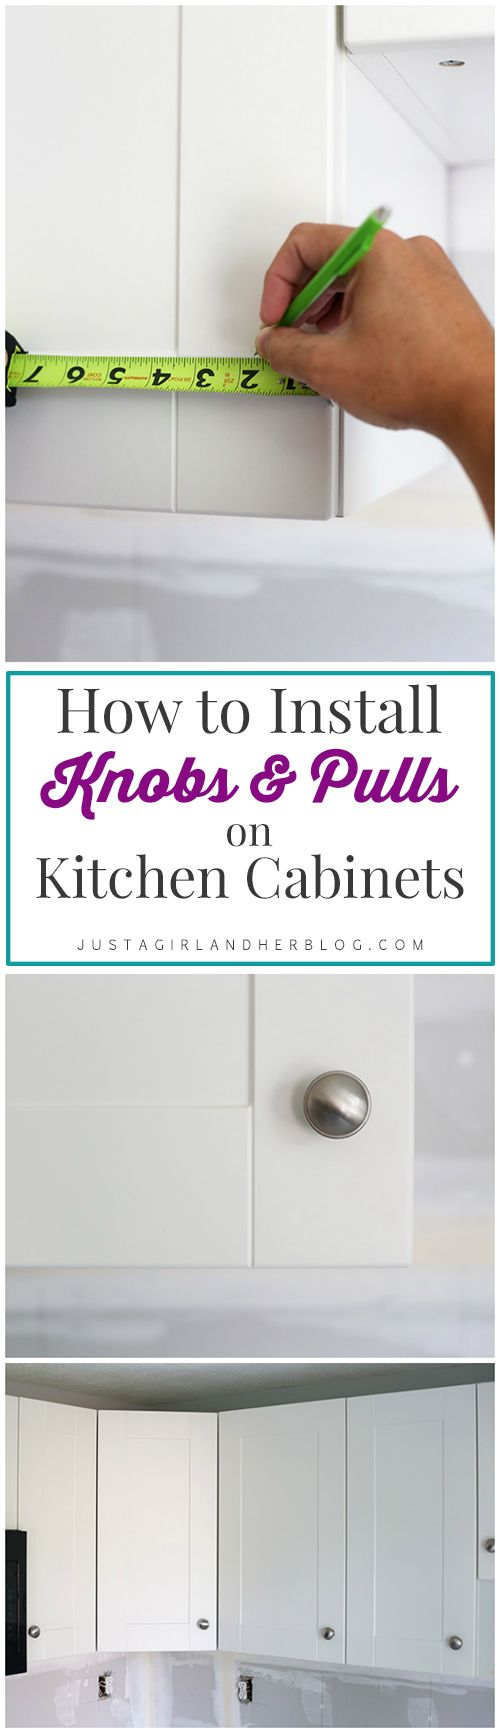 Easy Explanation Of How To Install Knobs U0026 Pulls And How To Know Where To  Put